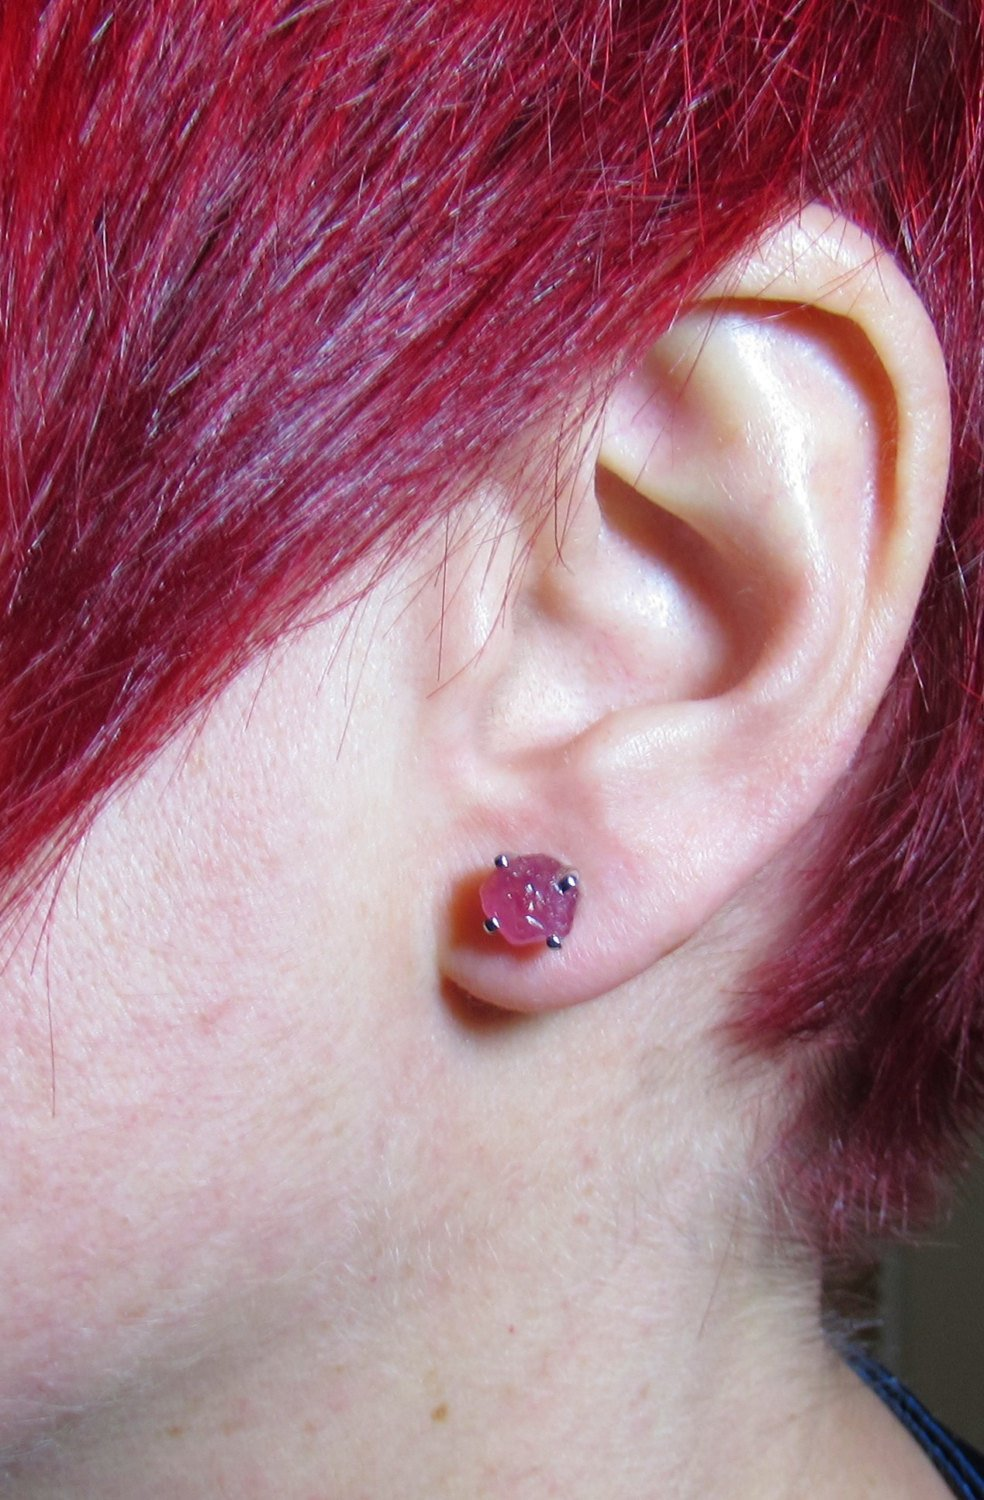 iprecious-creations - 4 Carats Raw Ruby Earrings - Rough Ruby Earrings - Uncut Ruby Earrings - Natural Ruby - Real Ruby - Jewelry